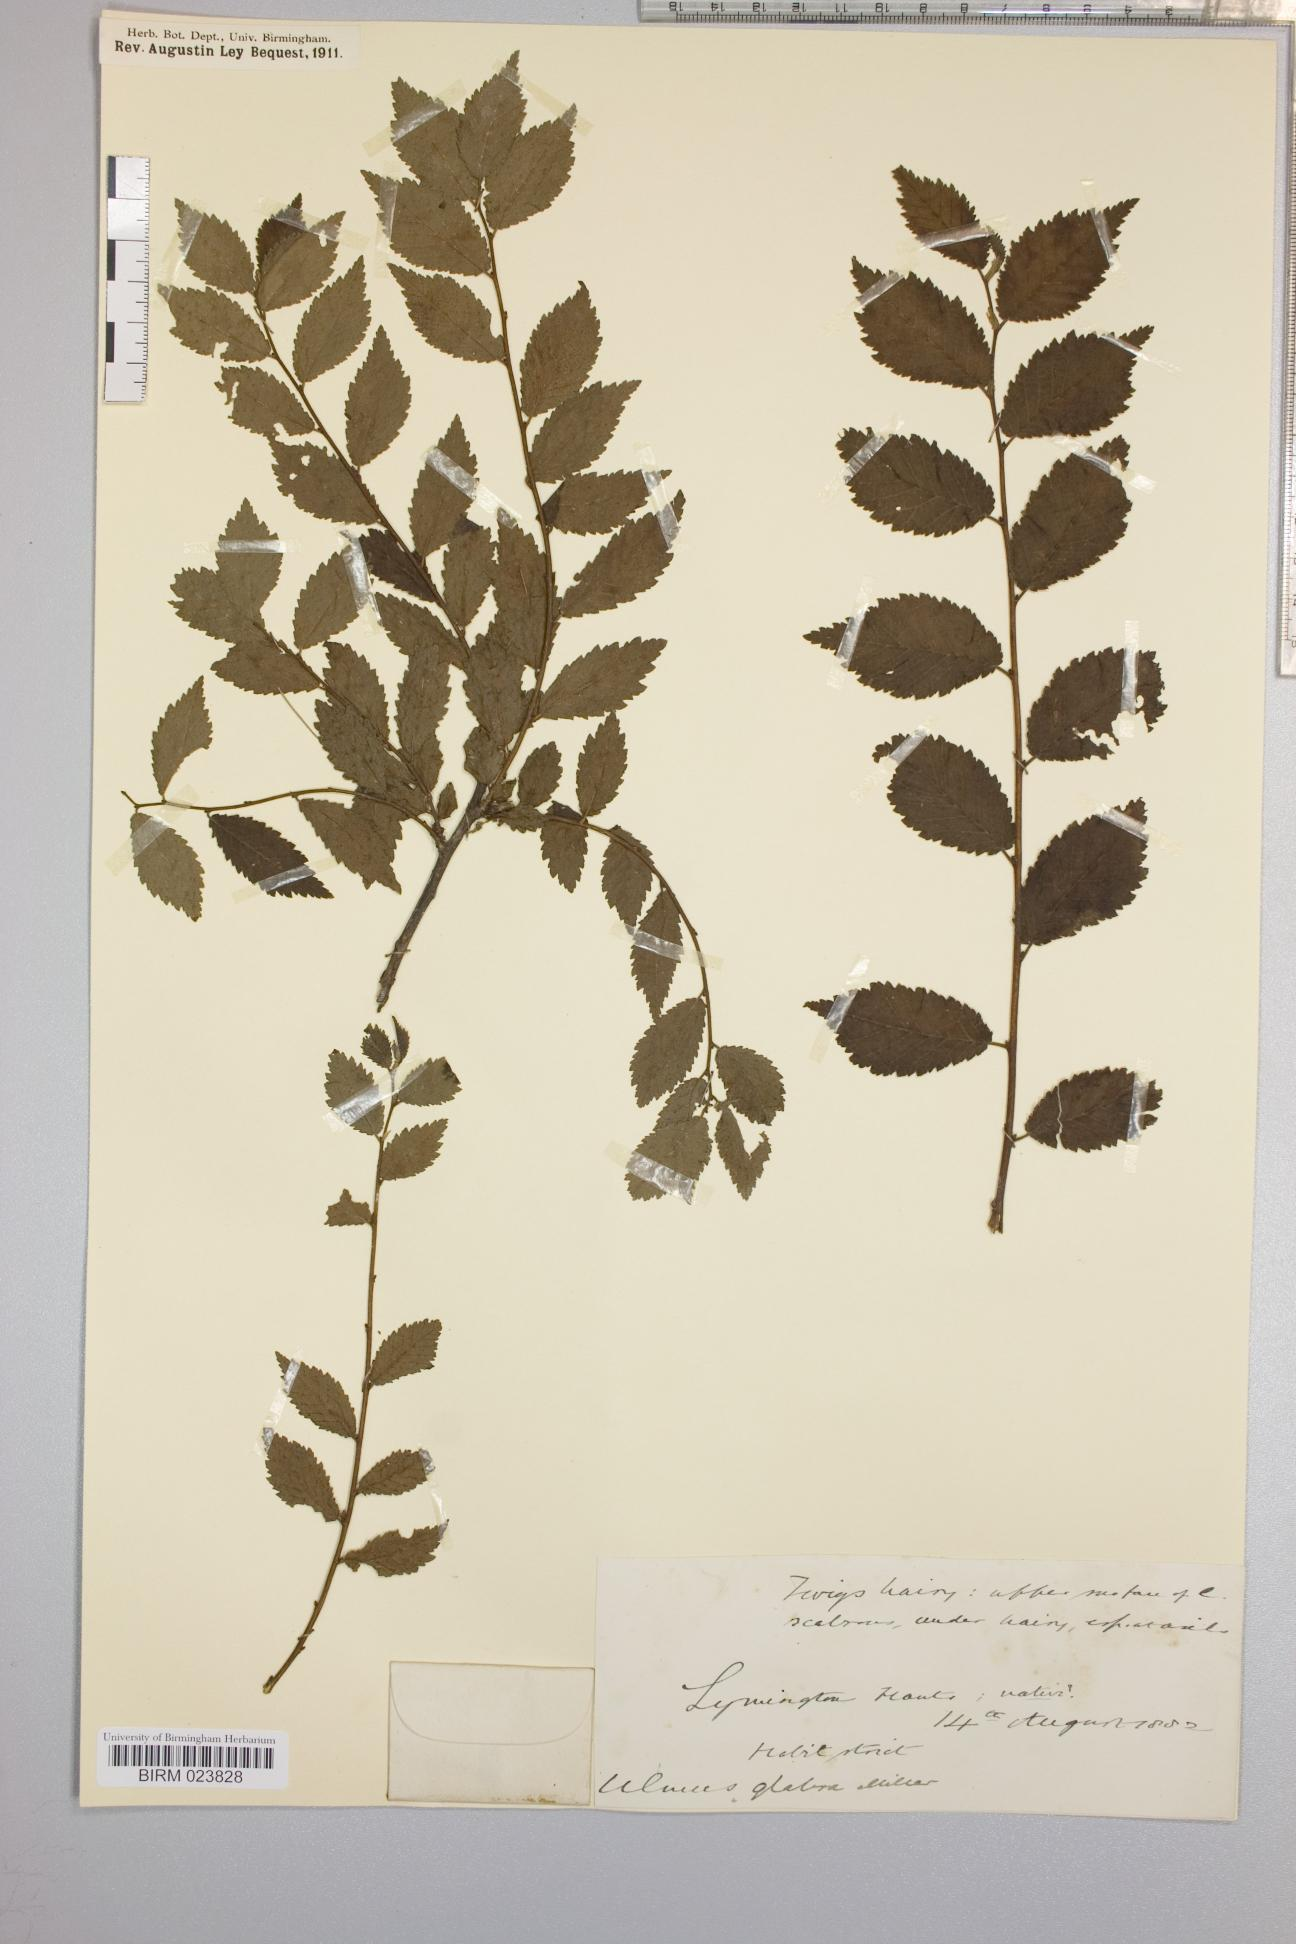 Ulmus glabra herbarium specimen from Lymington, VC11 South Hampshire in 1882 by Rev. Augustin Ley.